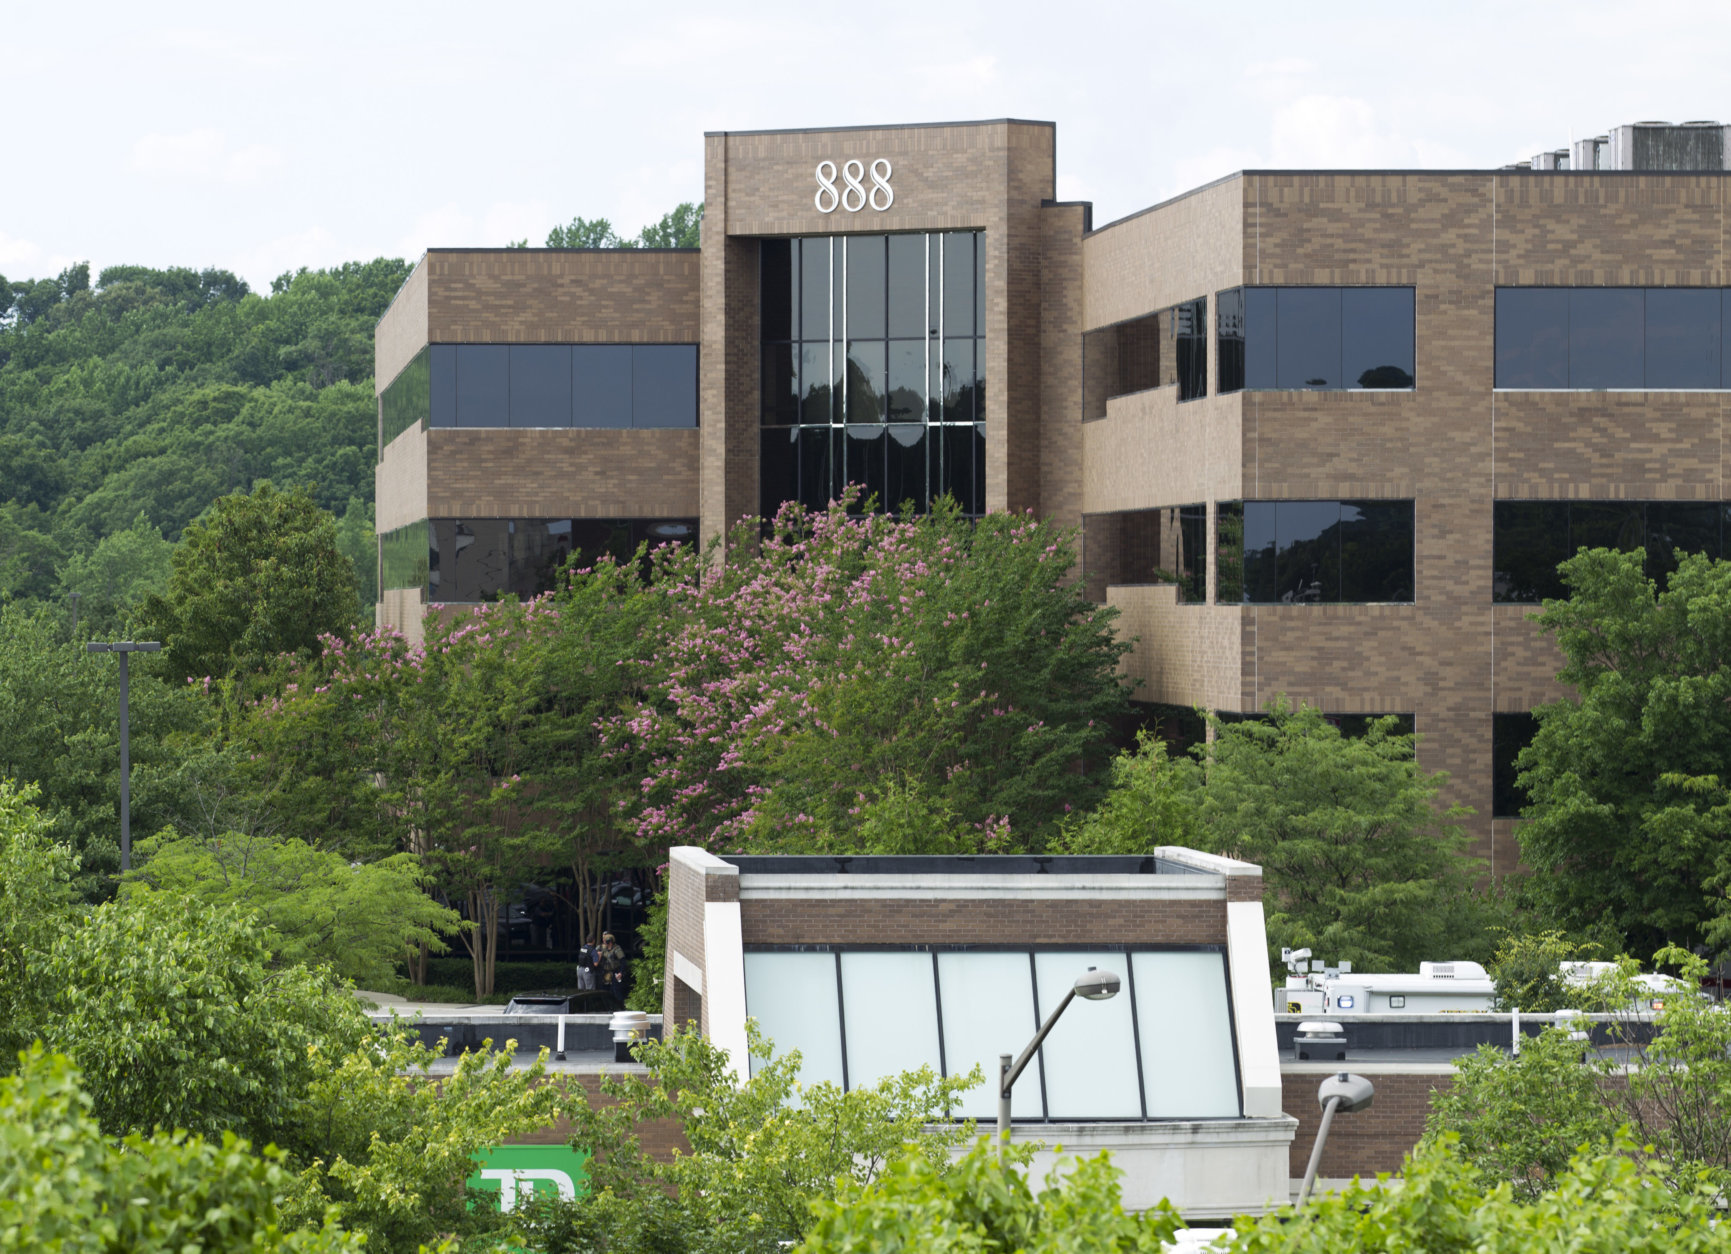 The 888 Bestgate Road building is seen after police received reports of multiple people being shot at The Capital Gazette newspaper in Annapolis, Md., Thursday, June 28, 2018. (AP Photo/Jose Luis Magana)